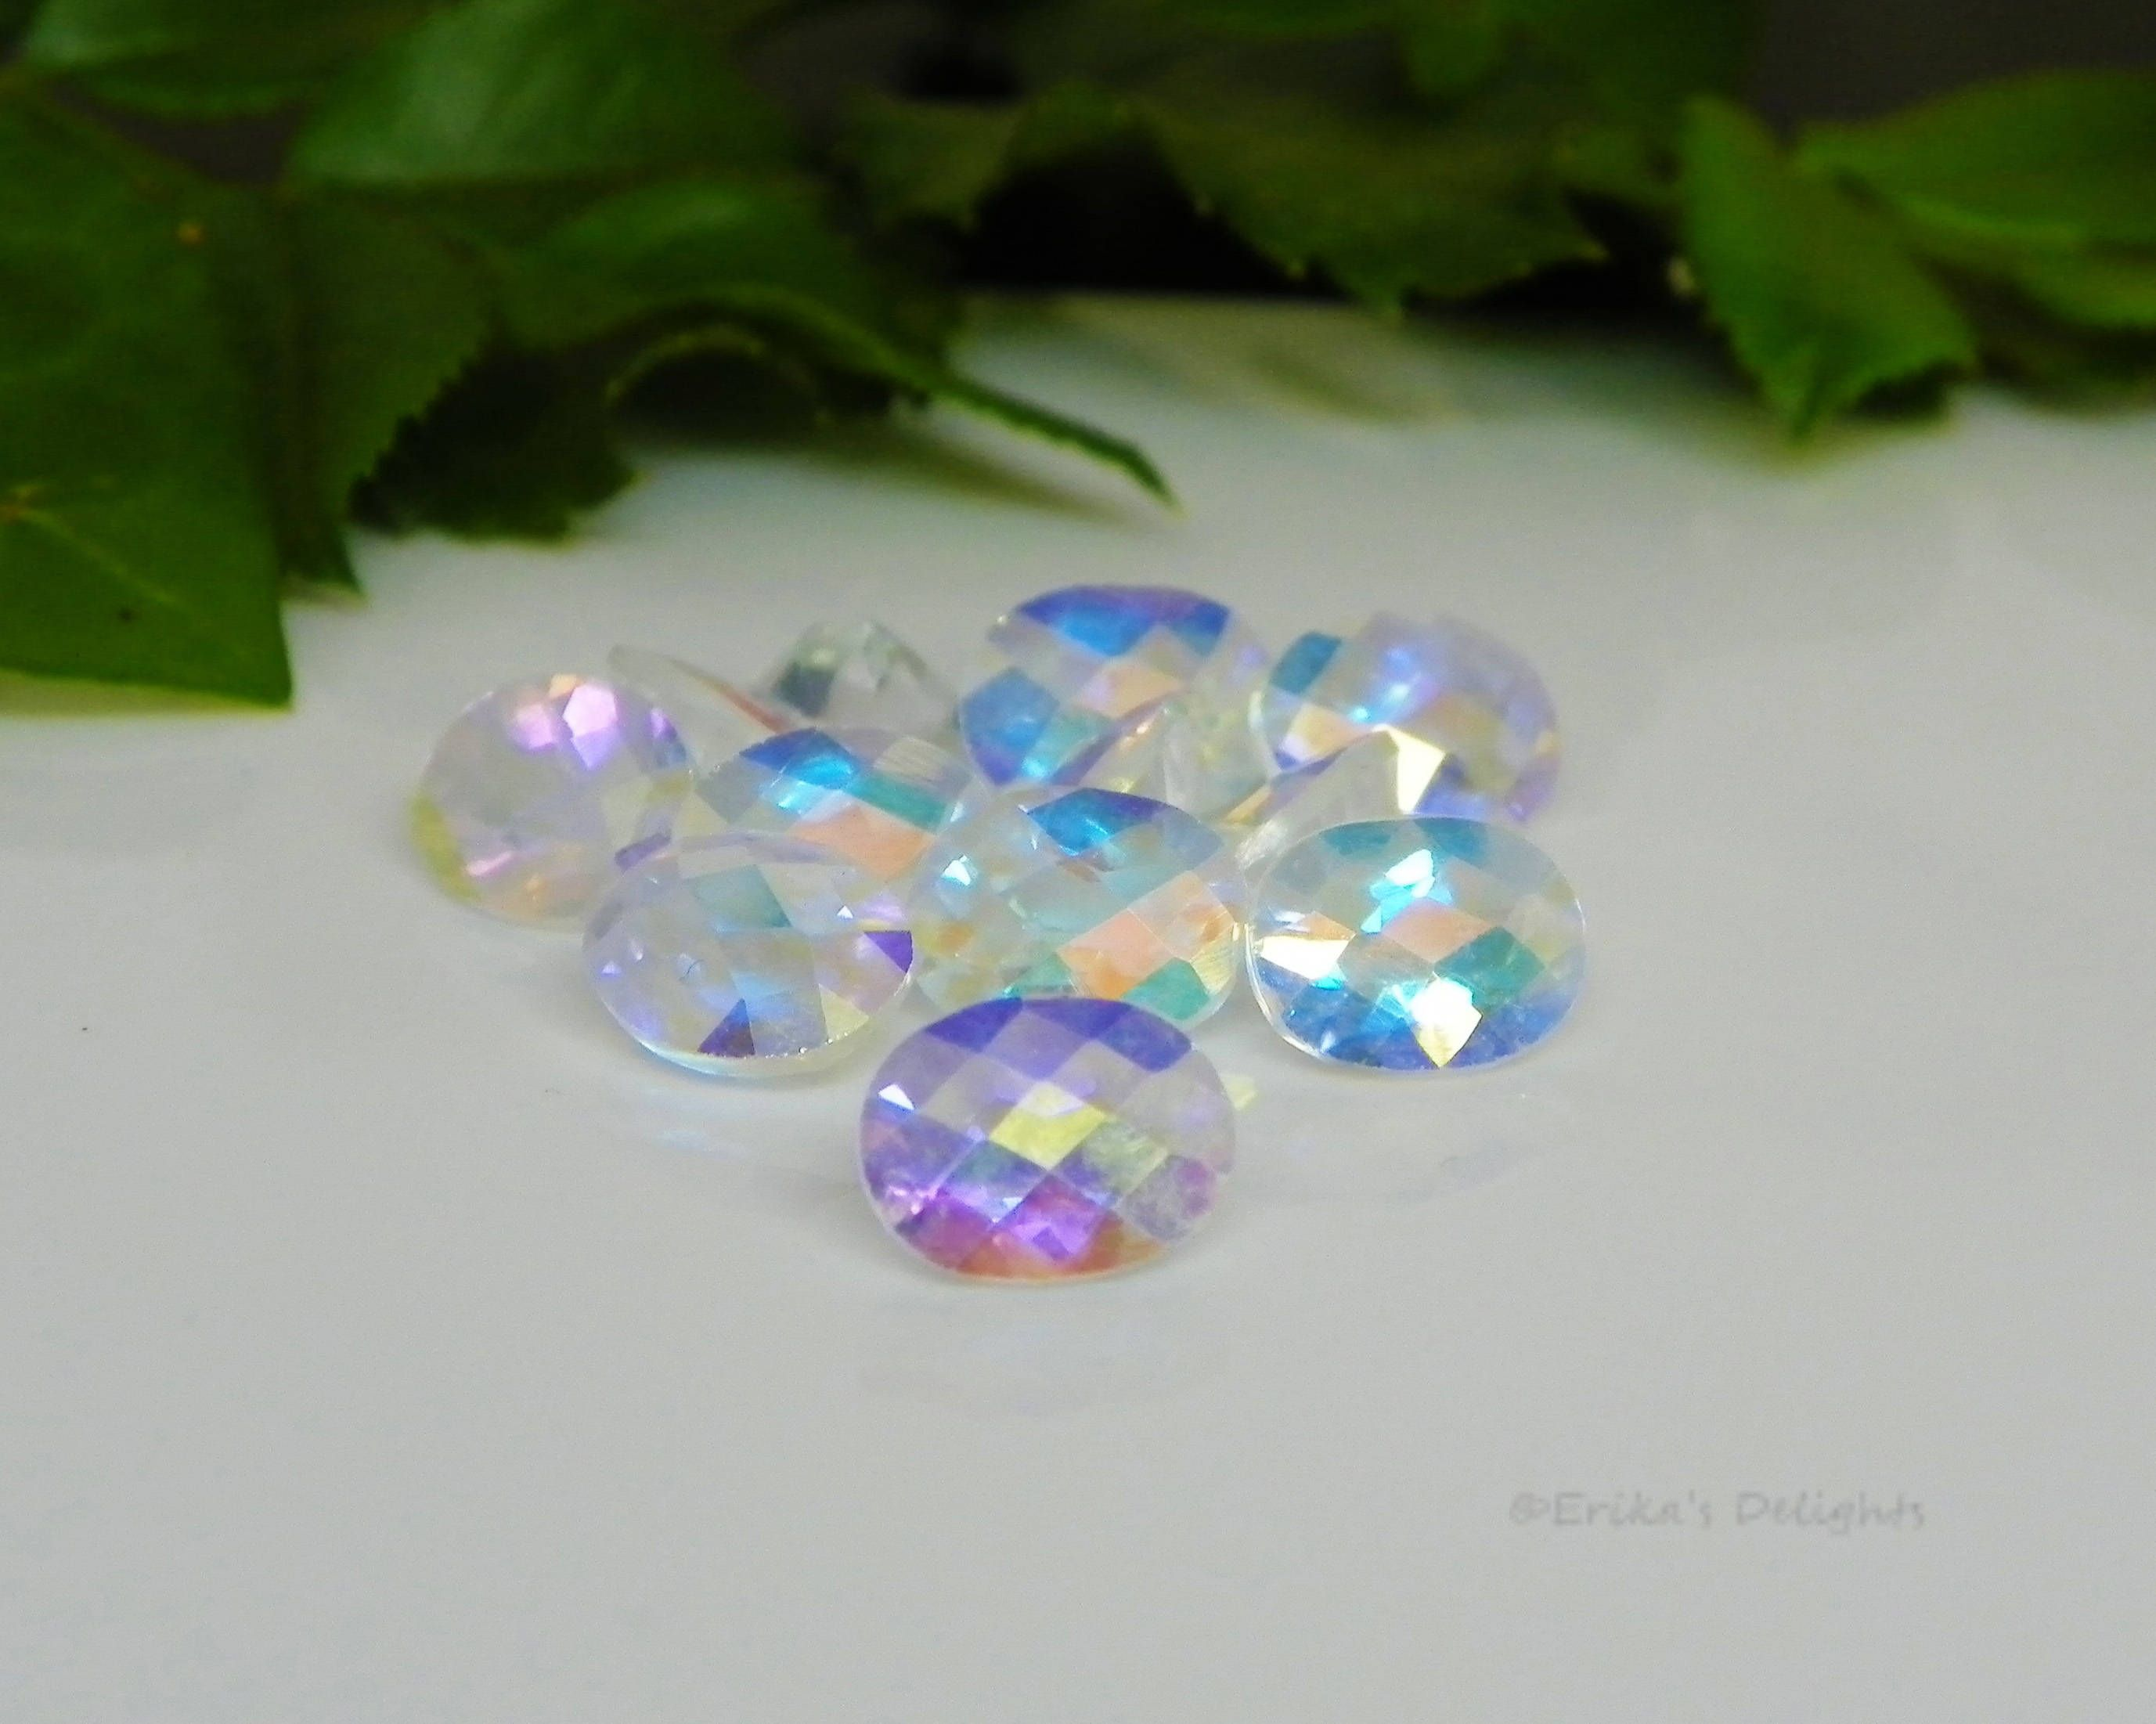 9x7 Oval Checkerboard Mercury Mystic Topaz  2.35cts